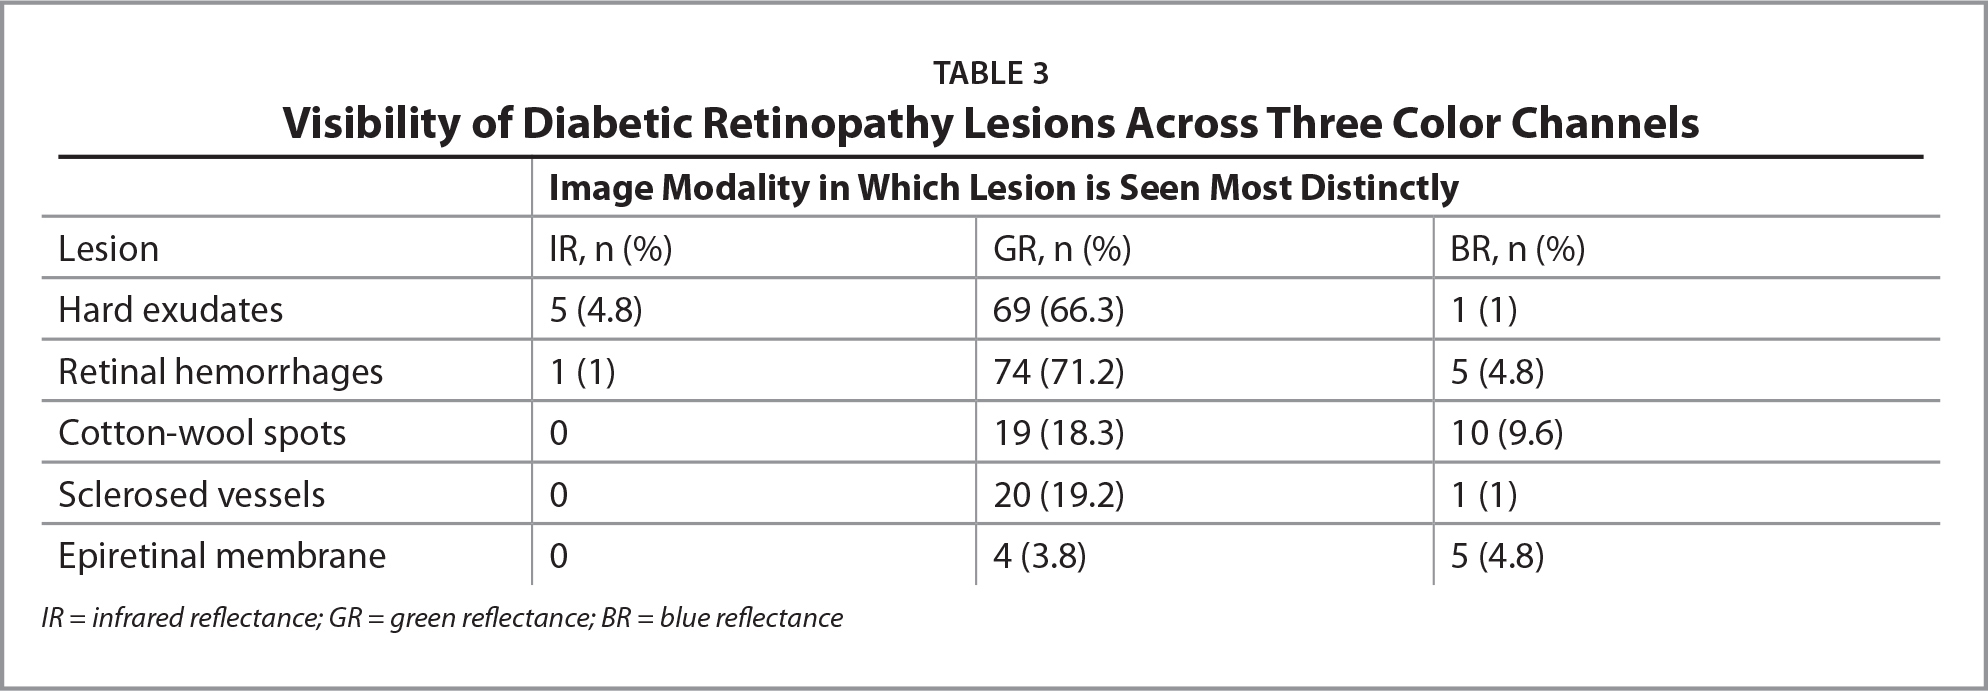 Visibility of Diabetic Retinopathy Lesions Across Three Color Channels